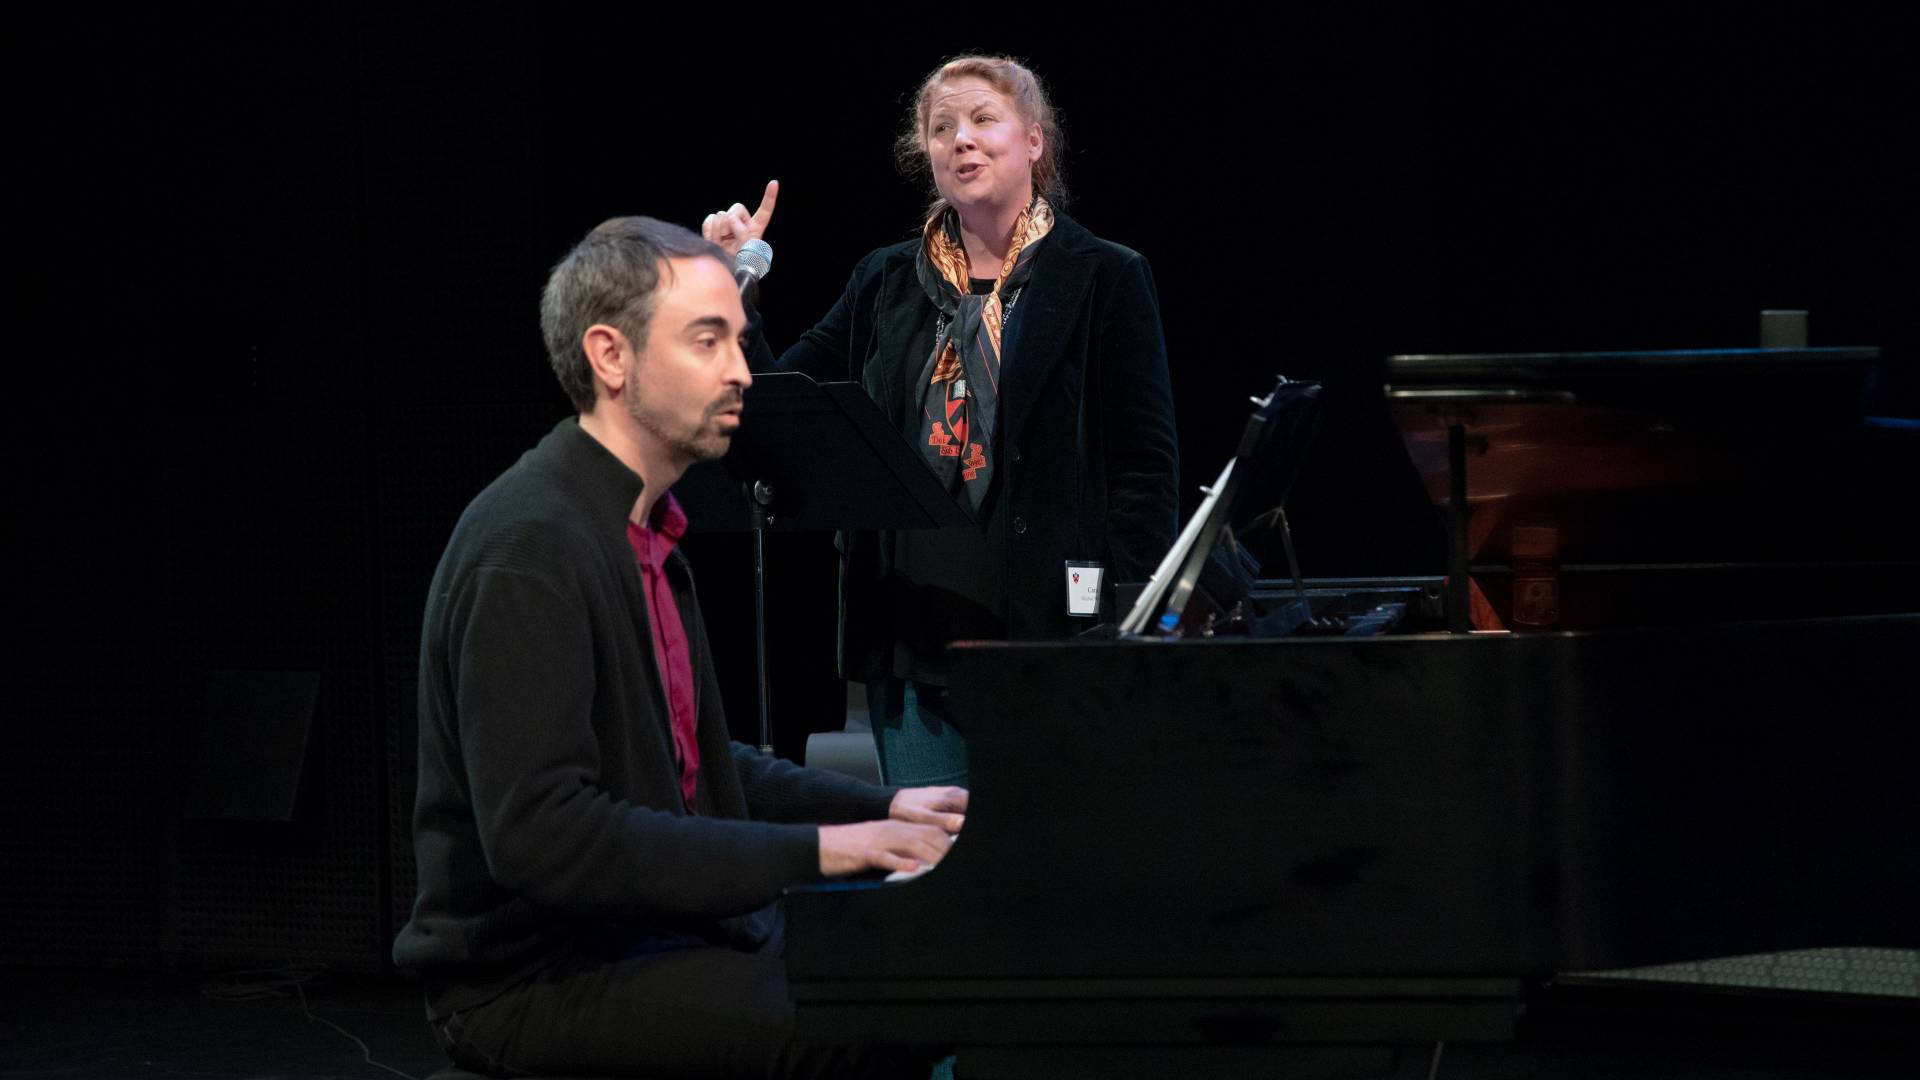 Cara Reichel singing and Peter Mills at the piano